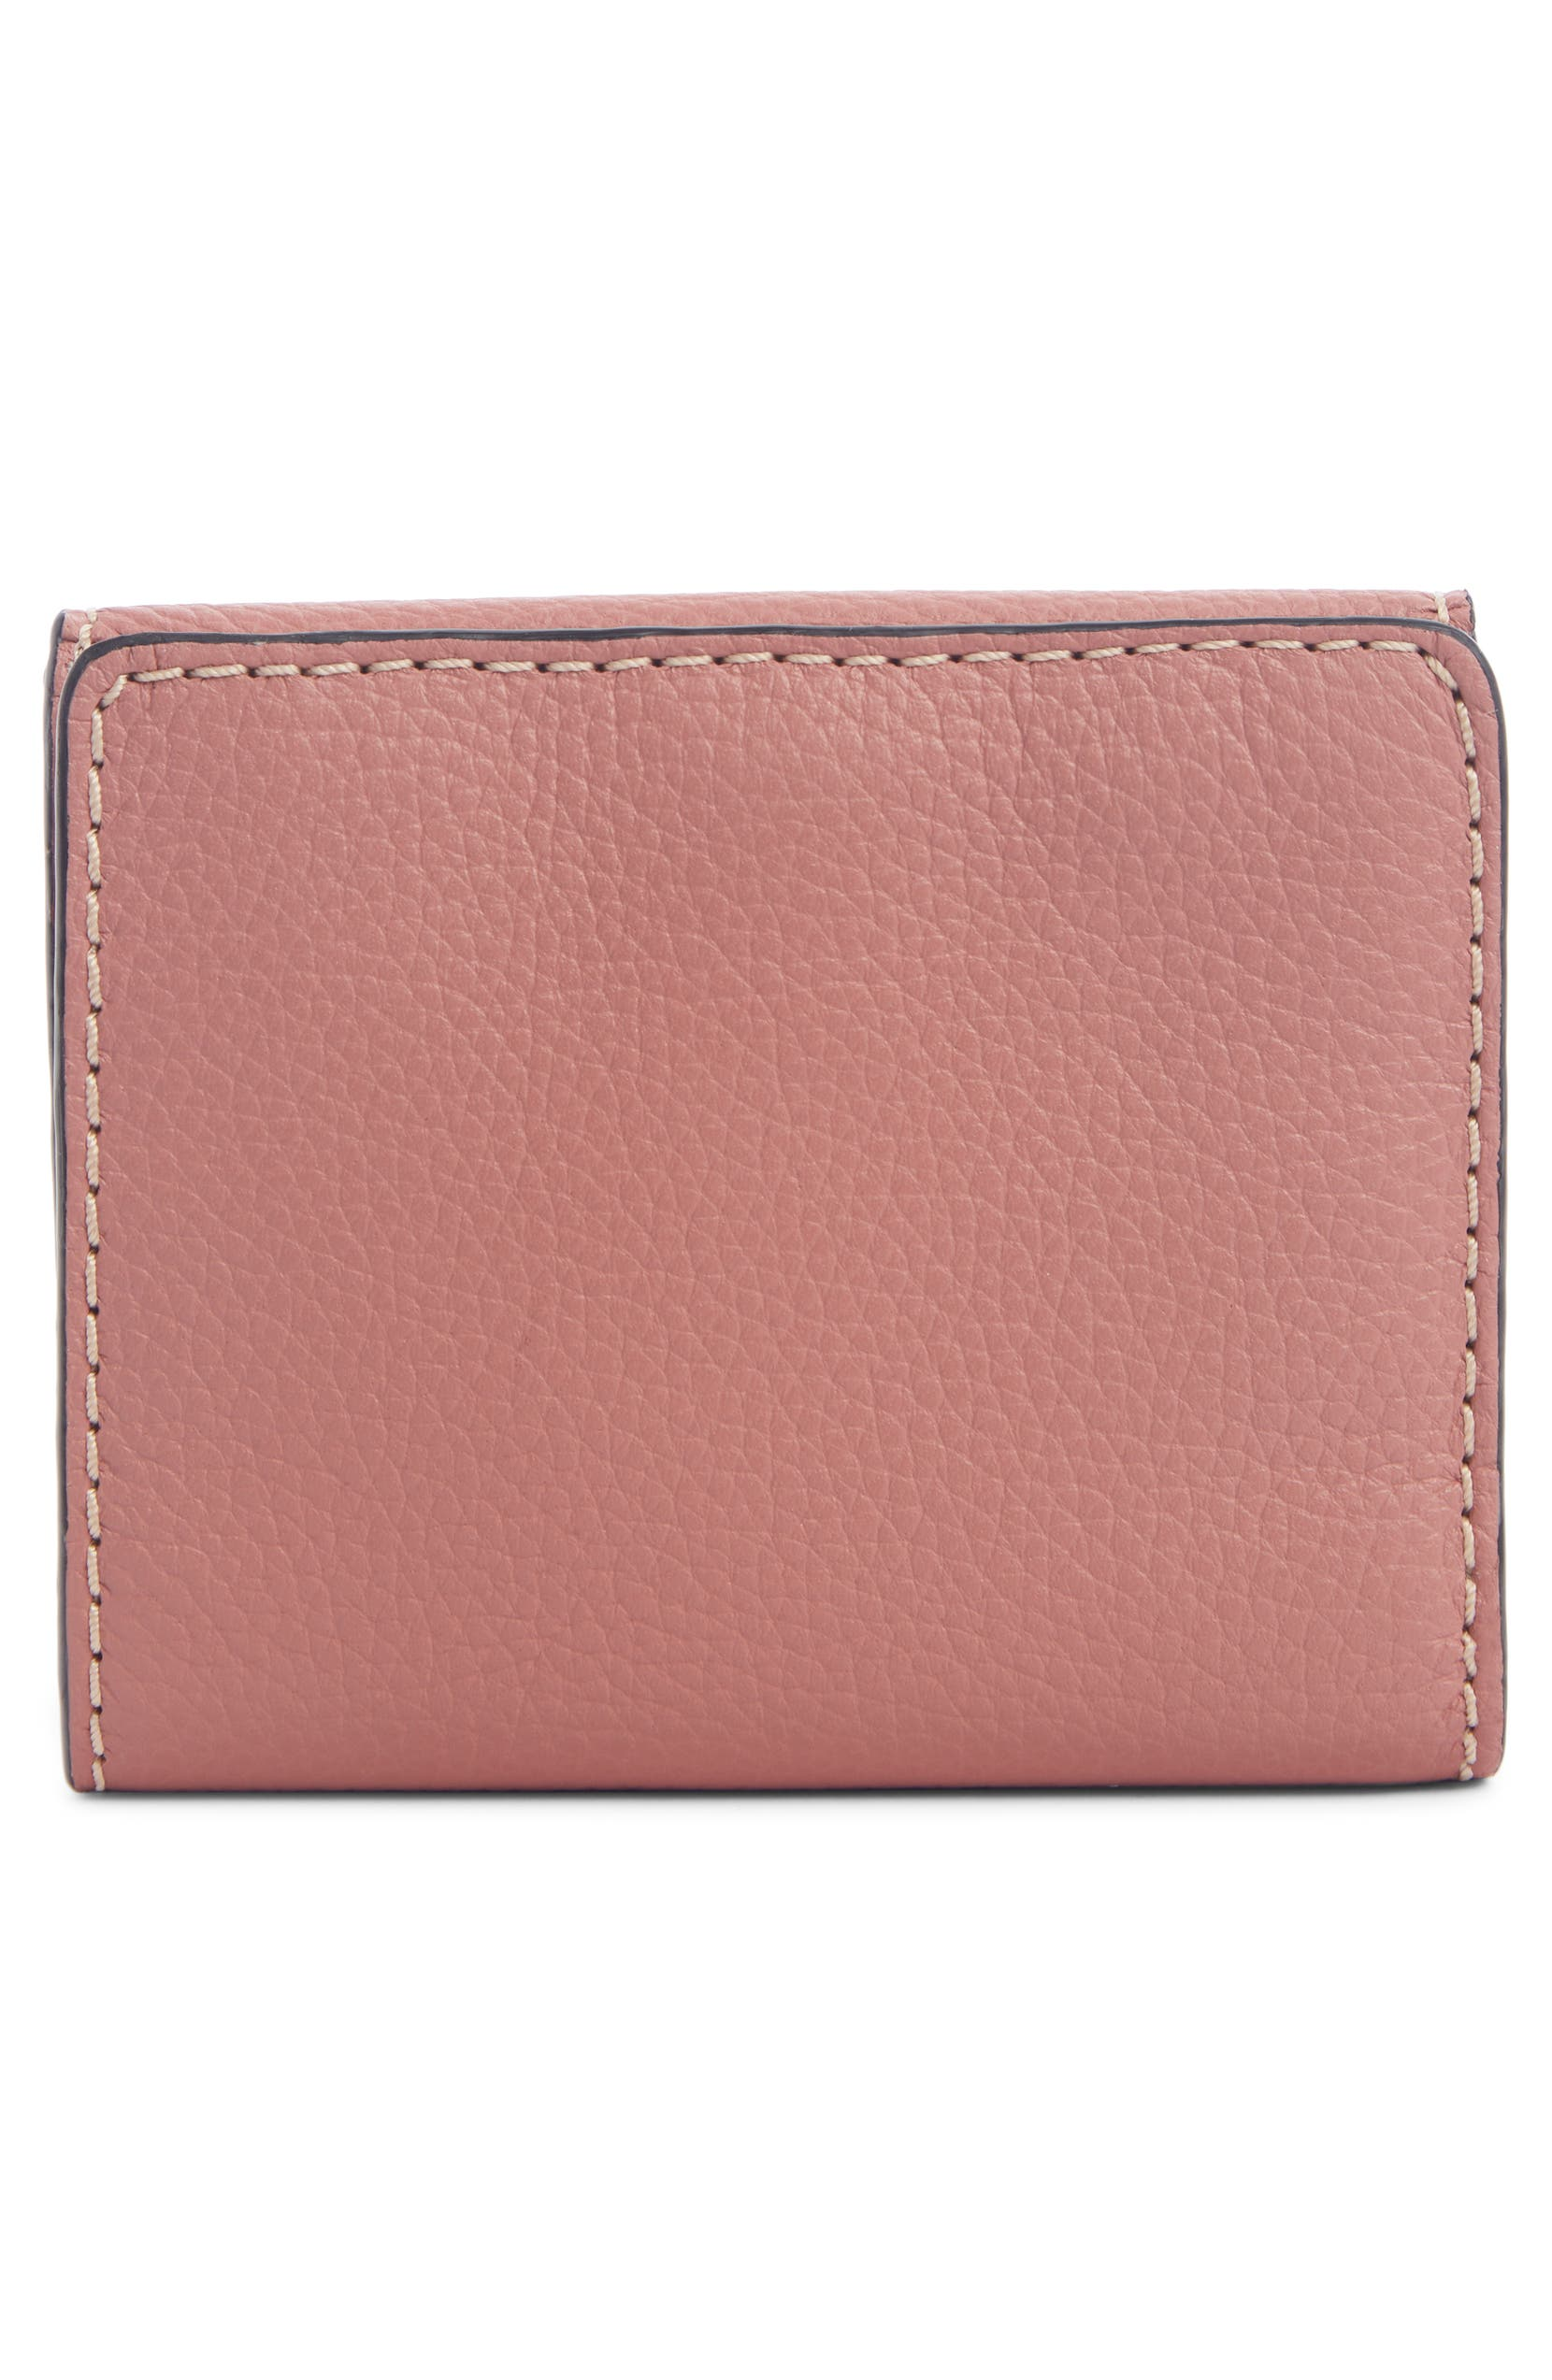 cd50d890 'Marcie' French Wallet